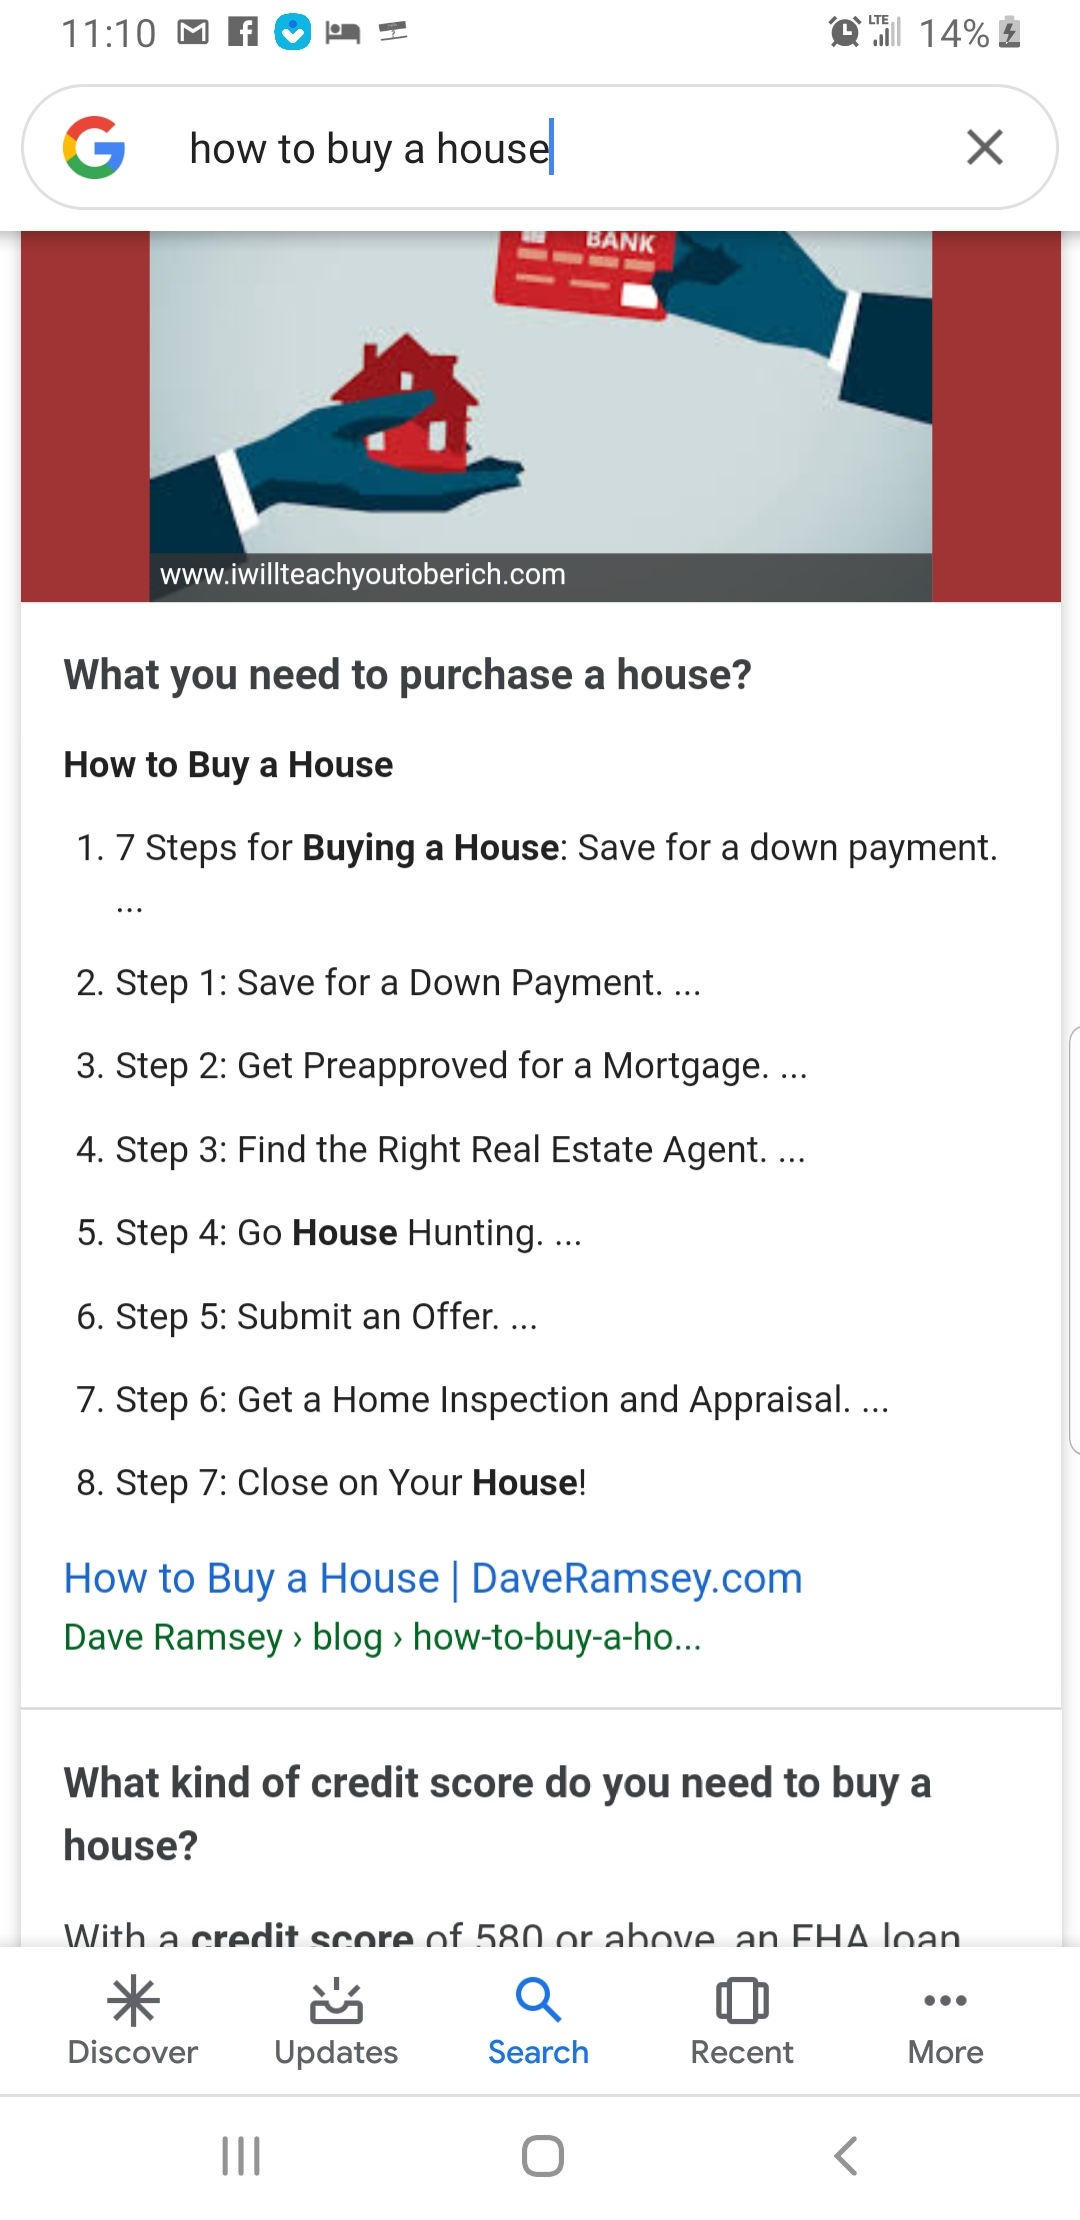 The Search of how to buy a house